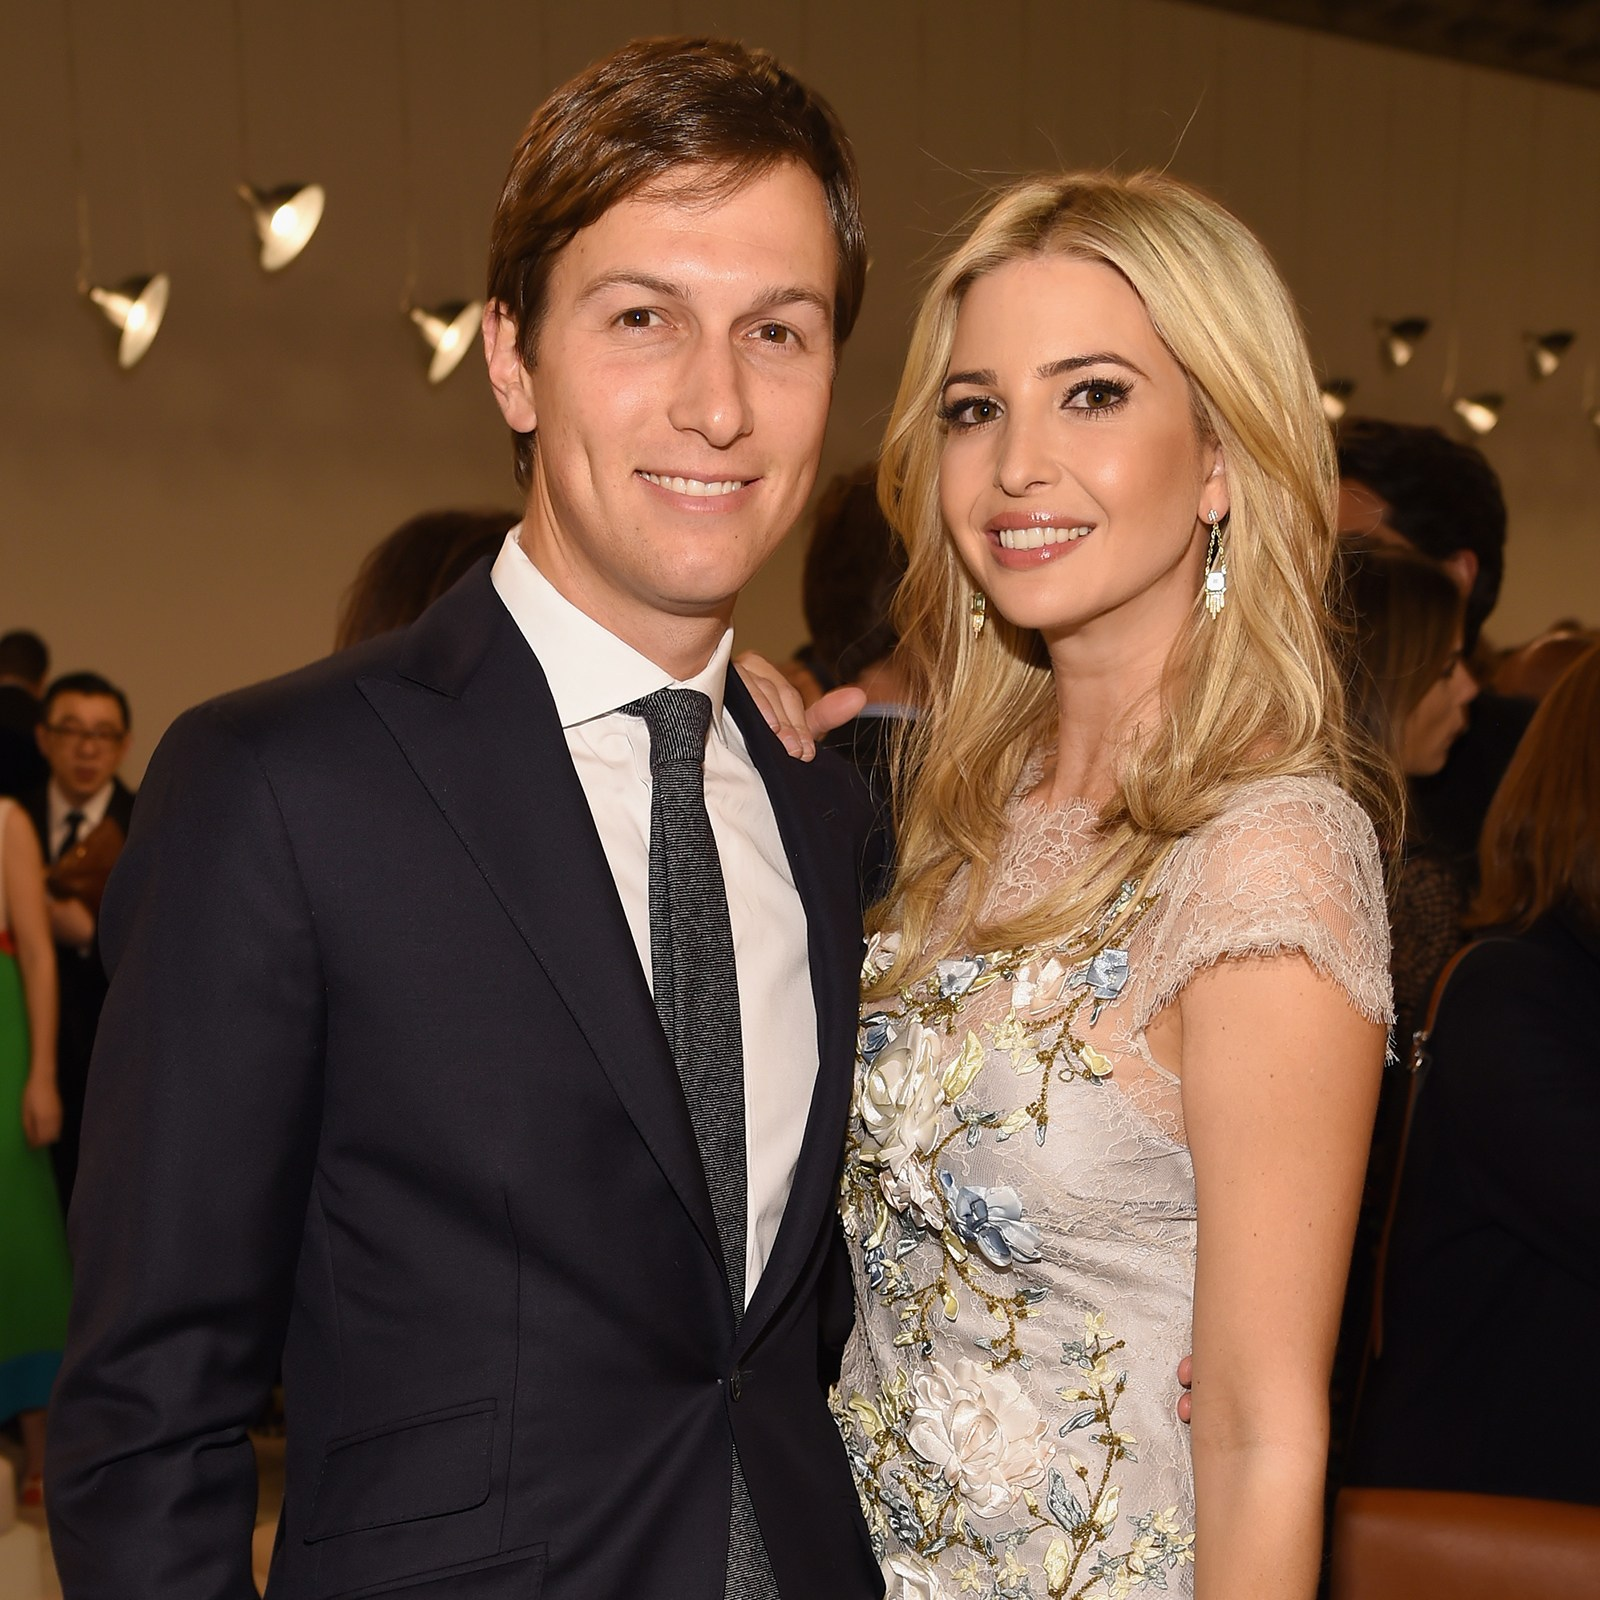 Image result for photo of kushner and ivanka